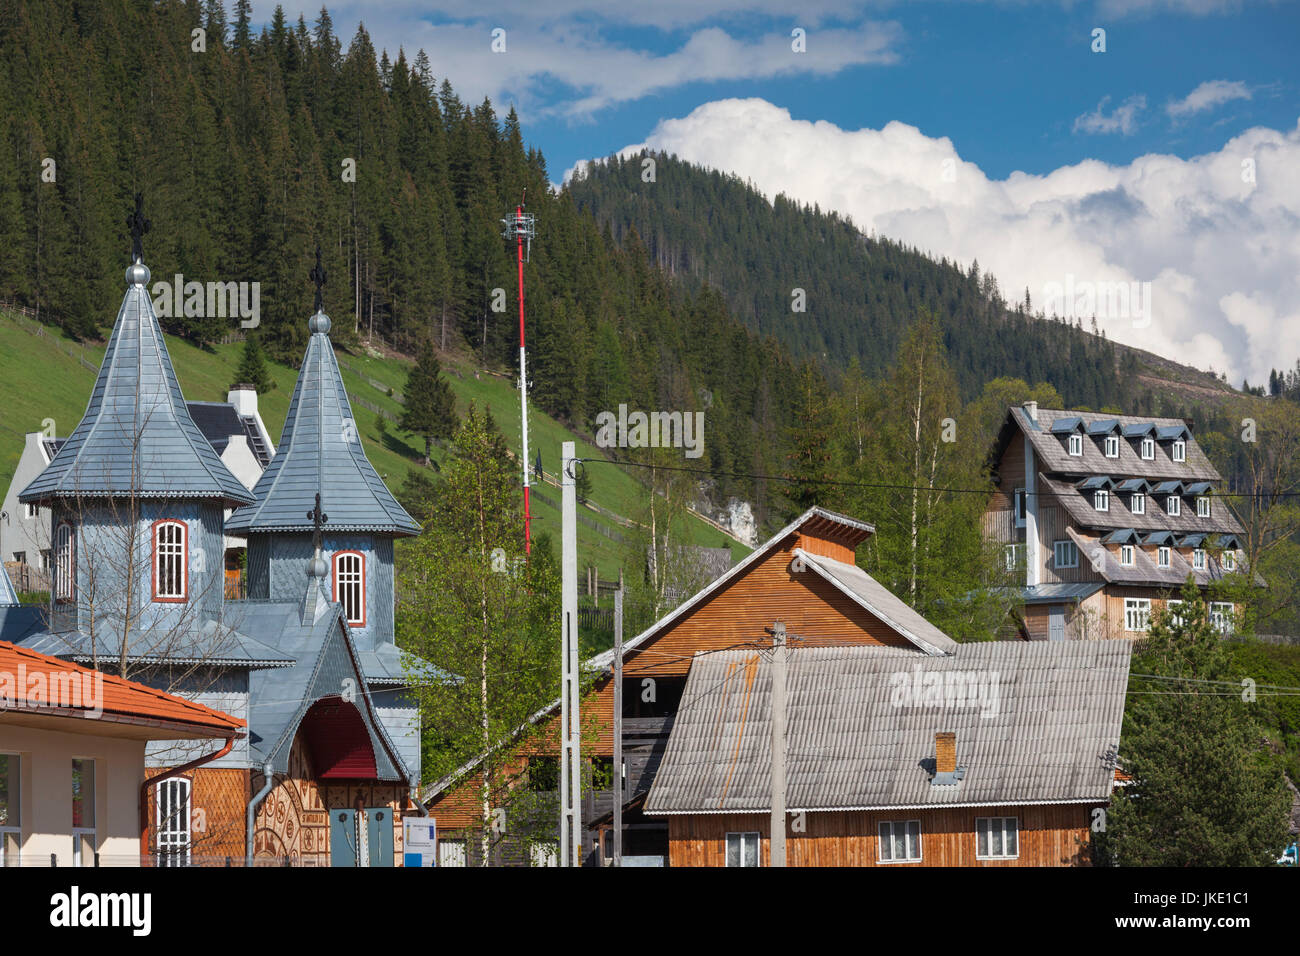 Romania, Bucovina Region, Rodna Mountains National Park, Sesuri, ski resort town, town Orthodox church - Stock Image